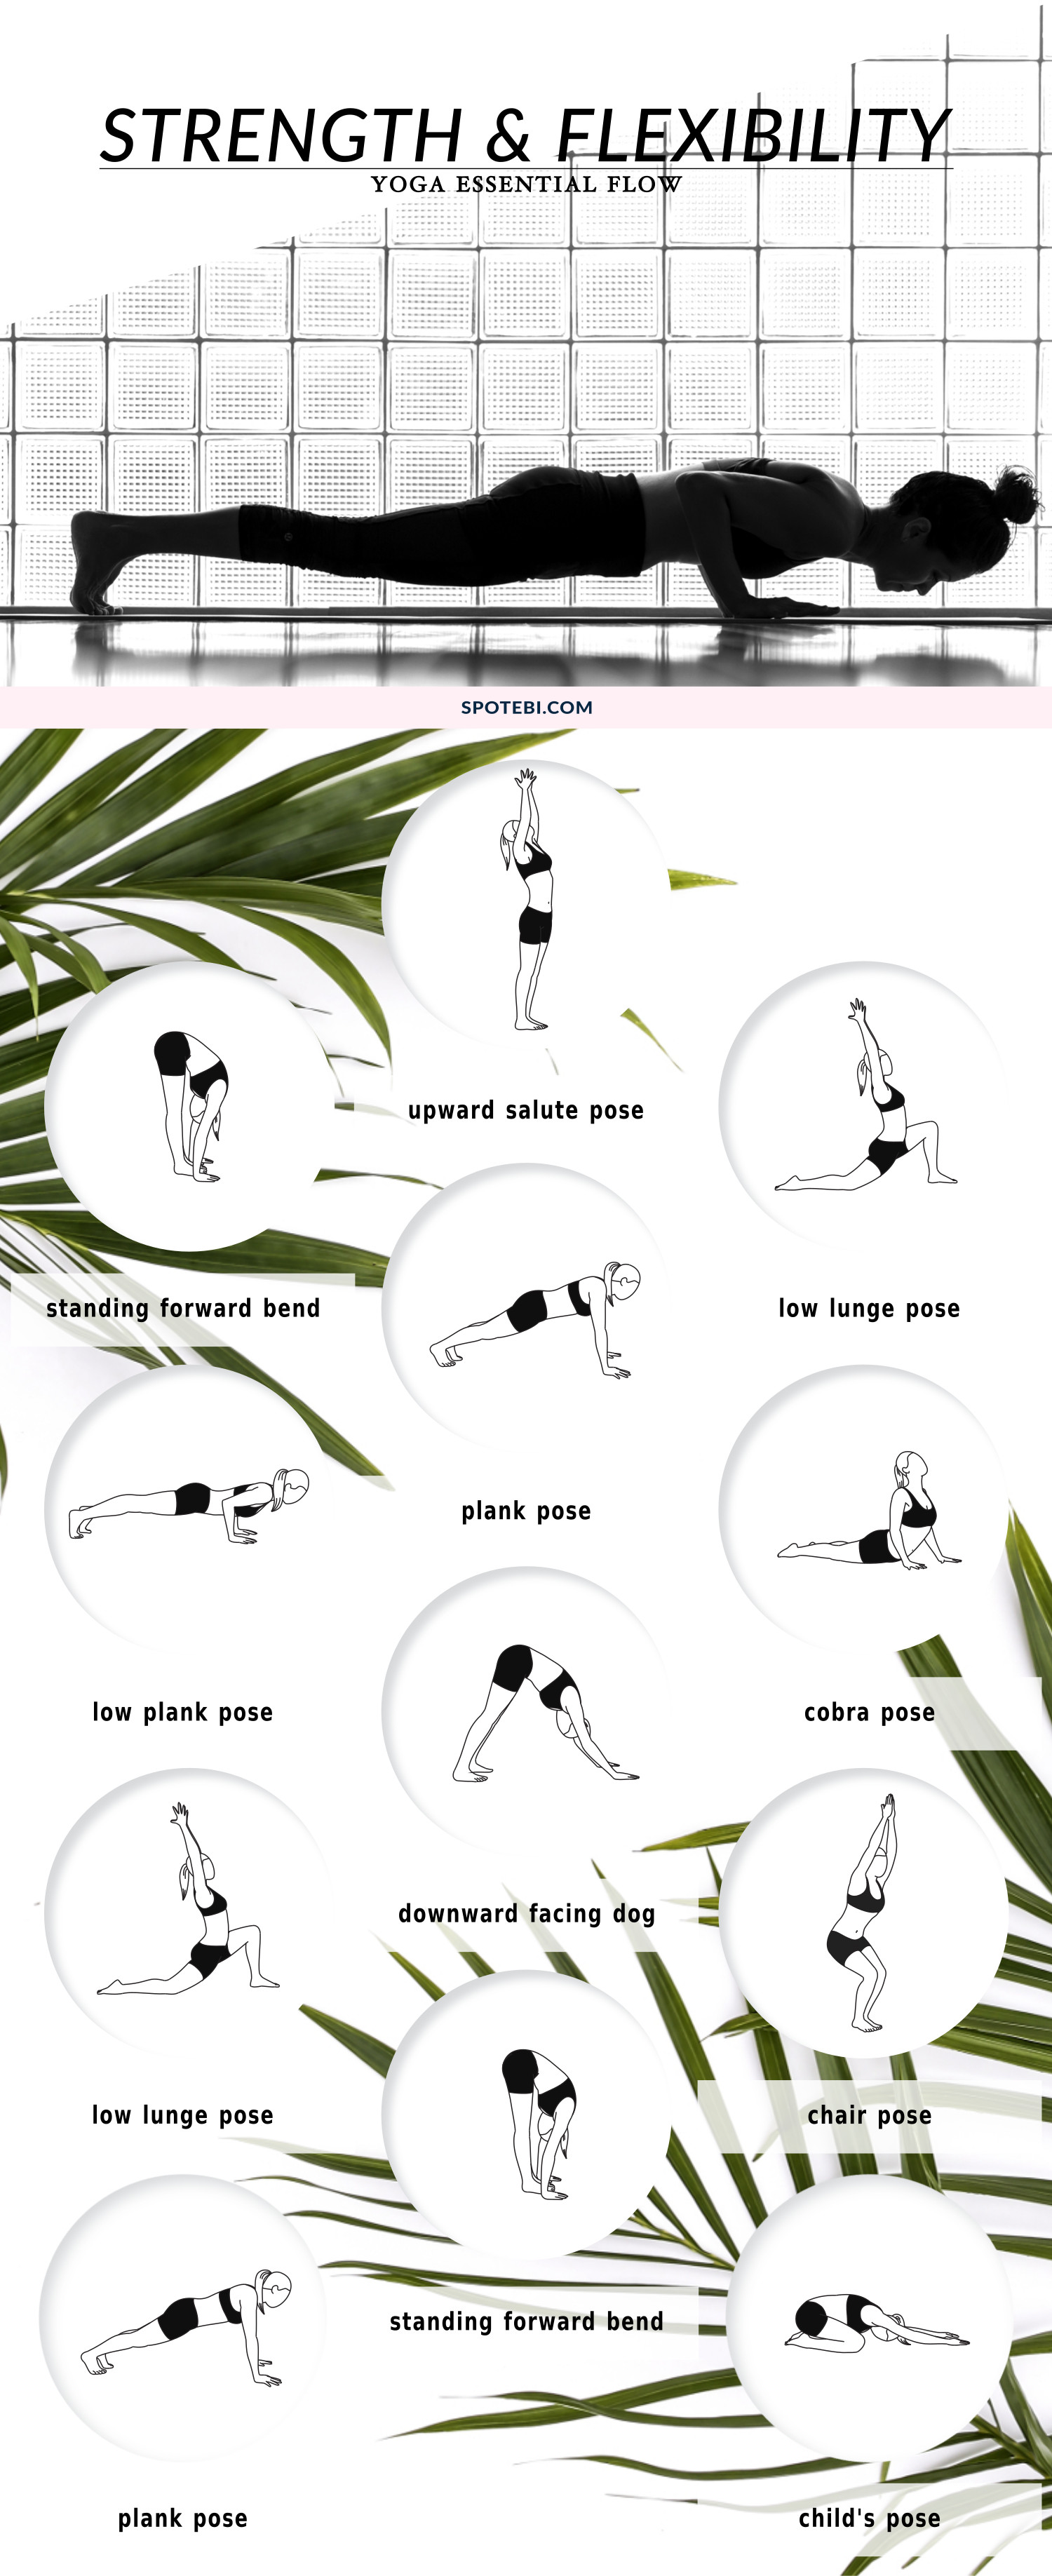 Strengthen your body, improve your flexibility and boost your energy with this 12 minute yoga essential flow. These bodyweight-bearing poses will help you keep your body youthful, build strong, flexible muscles and clear your mind. https://www.spotebi.com/yoga-sequences/strength-flexibility/